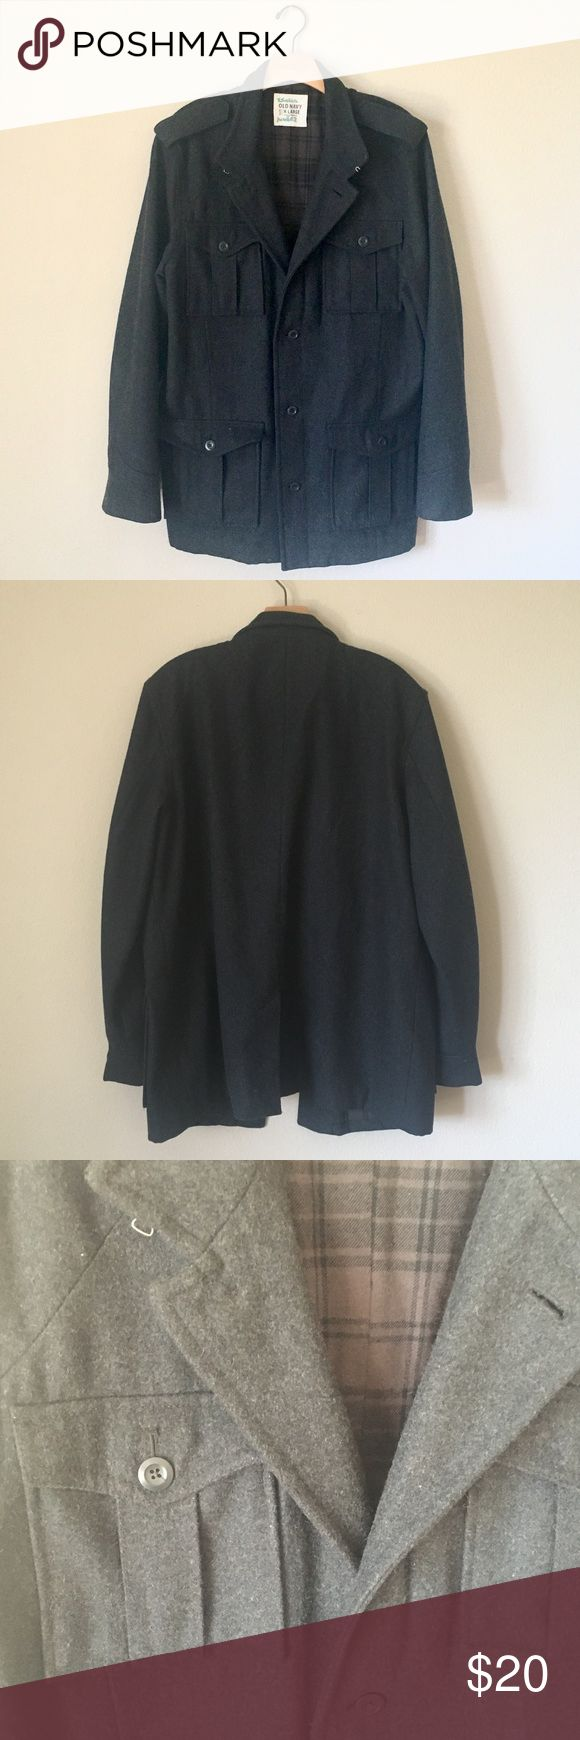 Old Navy Men's charcoal gray pea coat, size XL Old Navy Men's charcoal gray pea coat, size XL. Measurements: length 32.5 inches, shoulder to shoulder laying flat 19 inches, sleeve 27 inches. This coat has multiple pockets and is made of a heavy material. Military-inspired design. Made of wool, polyester, and cotton. Excellent condition other than the writing on the inside tag. Old Navy Jackets & Coats Pea Coats